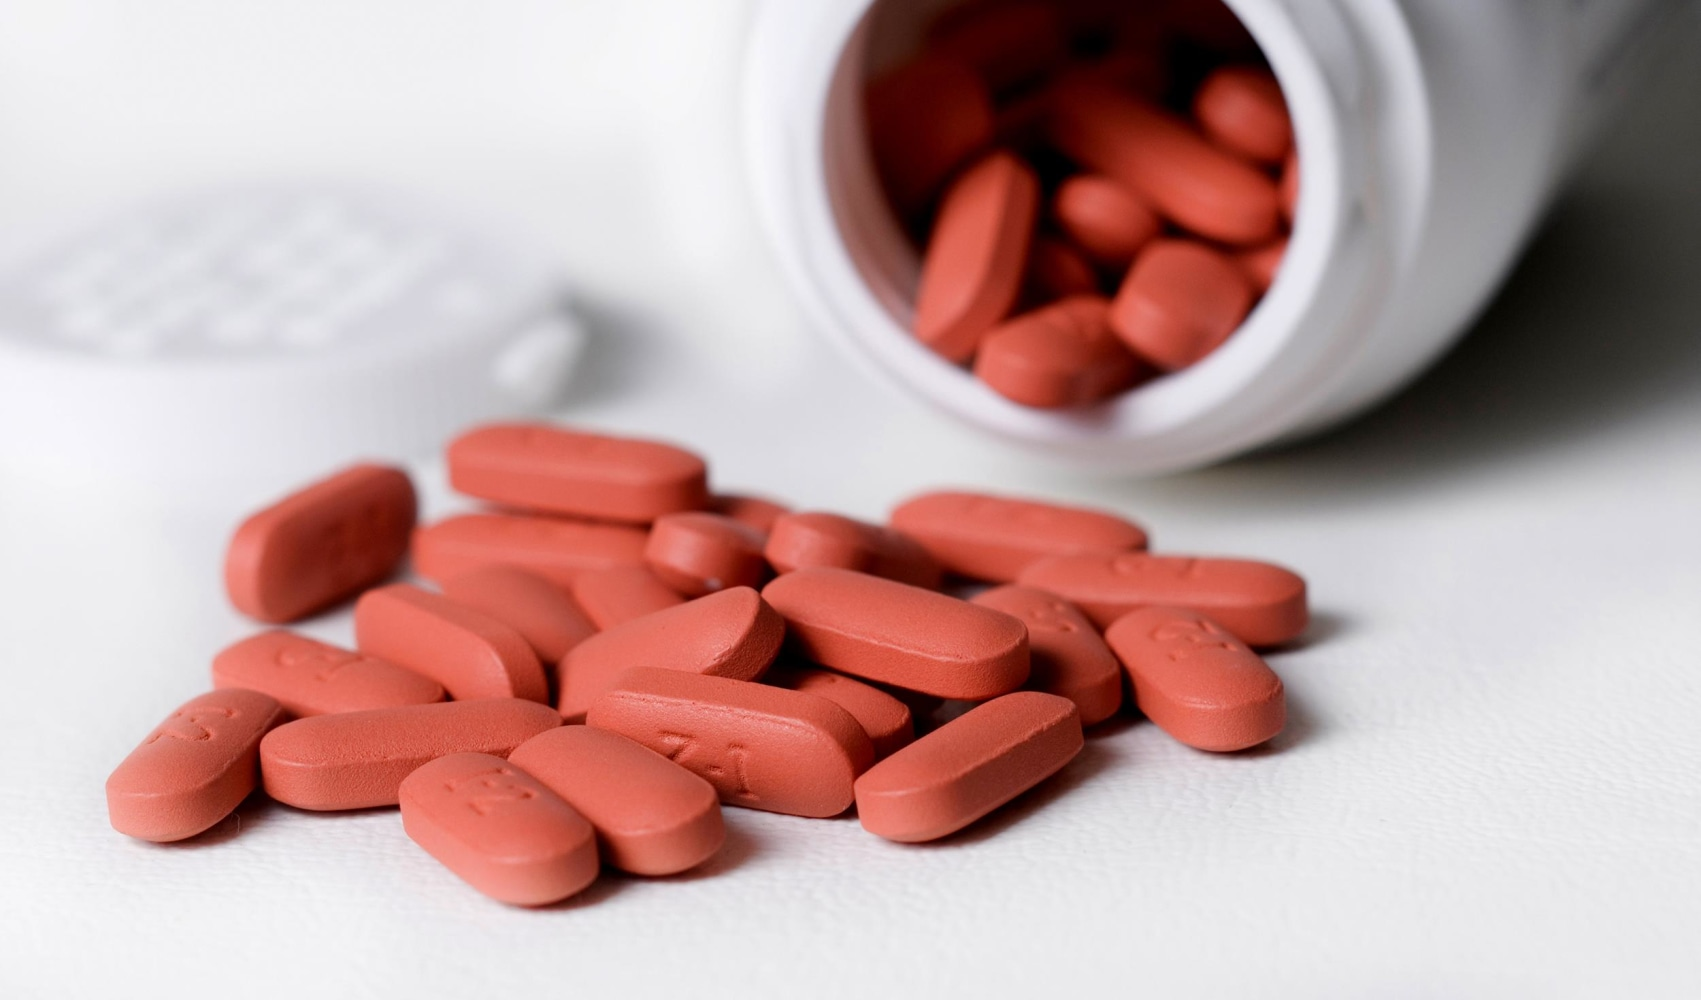 Taking common painkillers could increase heart attack risk